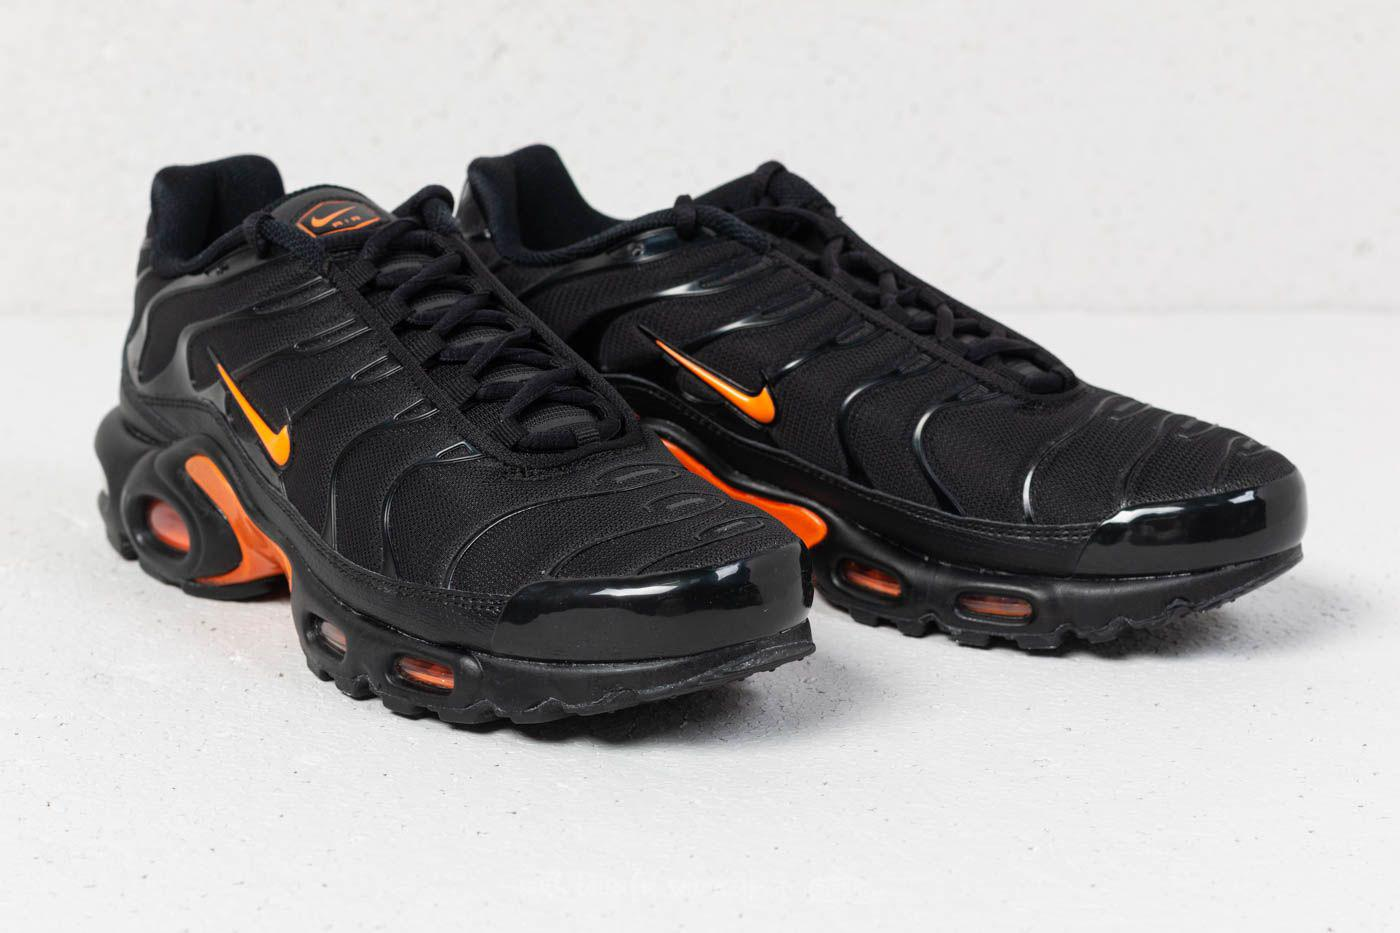 new style 5a061 f11b8 Men's Air Max Plus Tn Se Black/ Total Orange